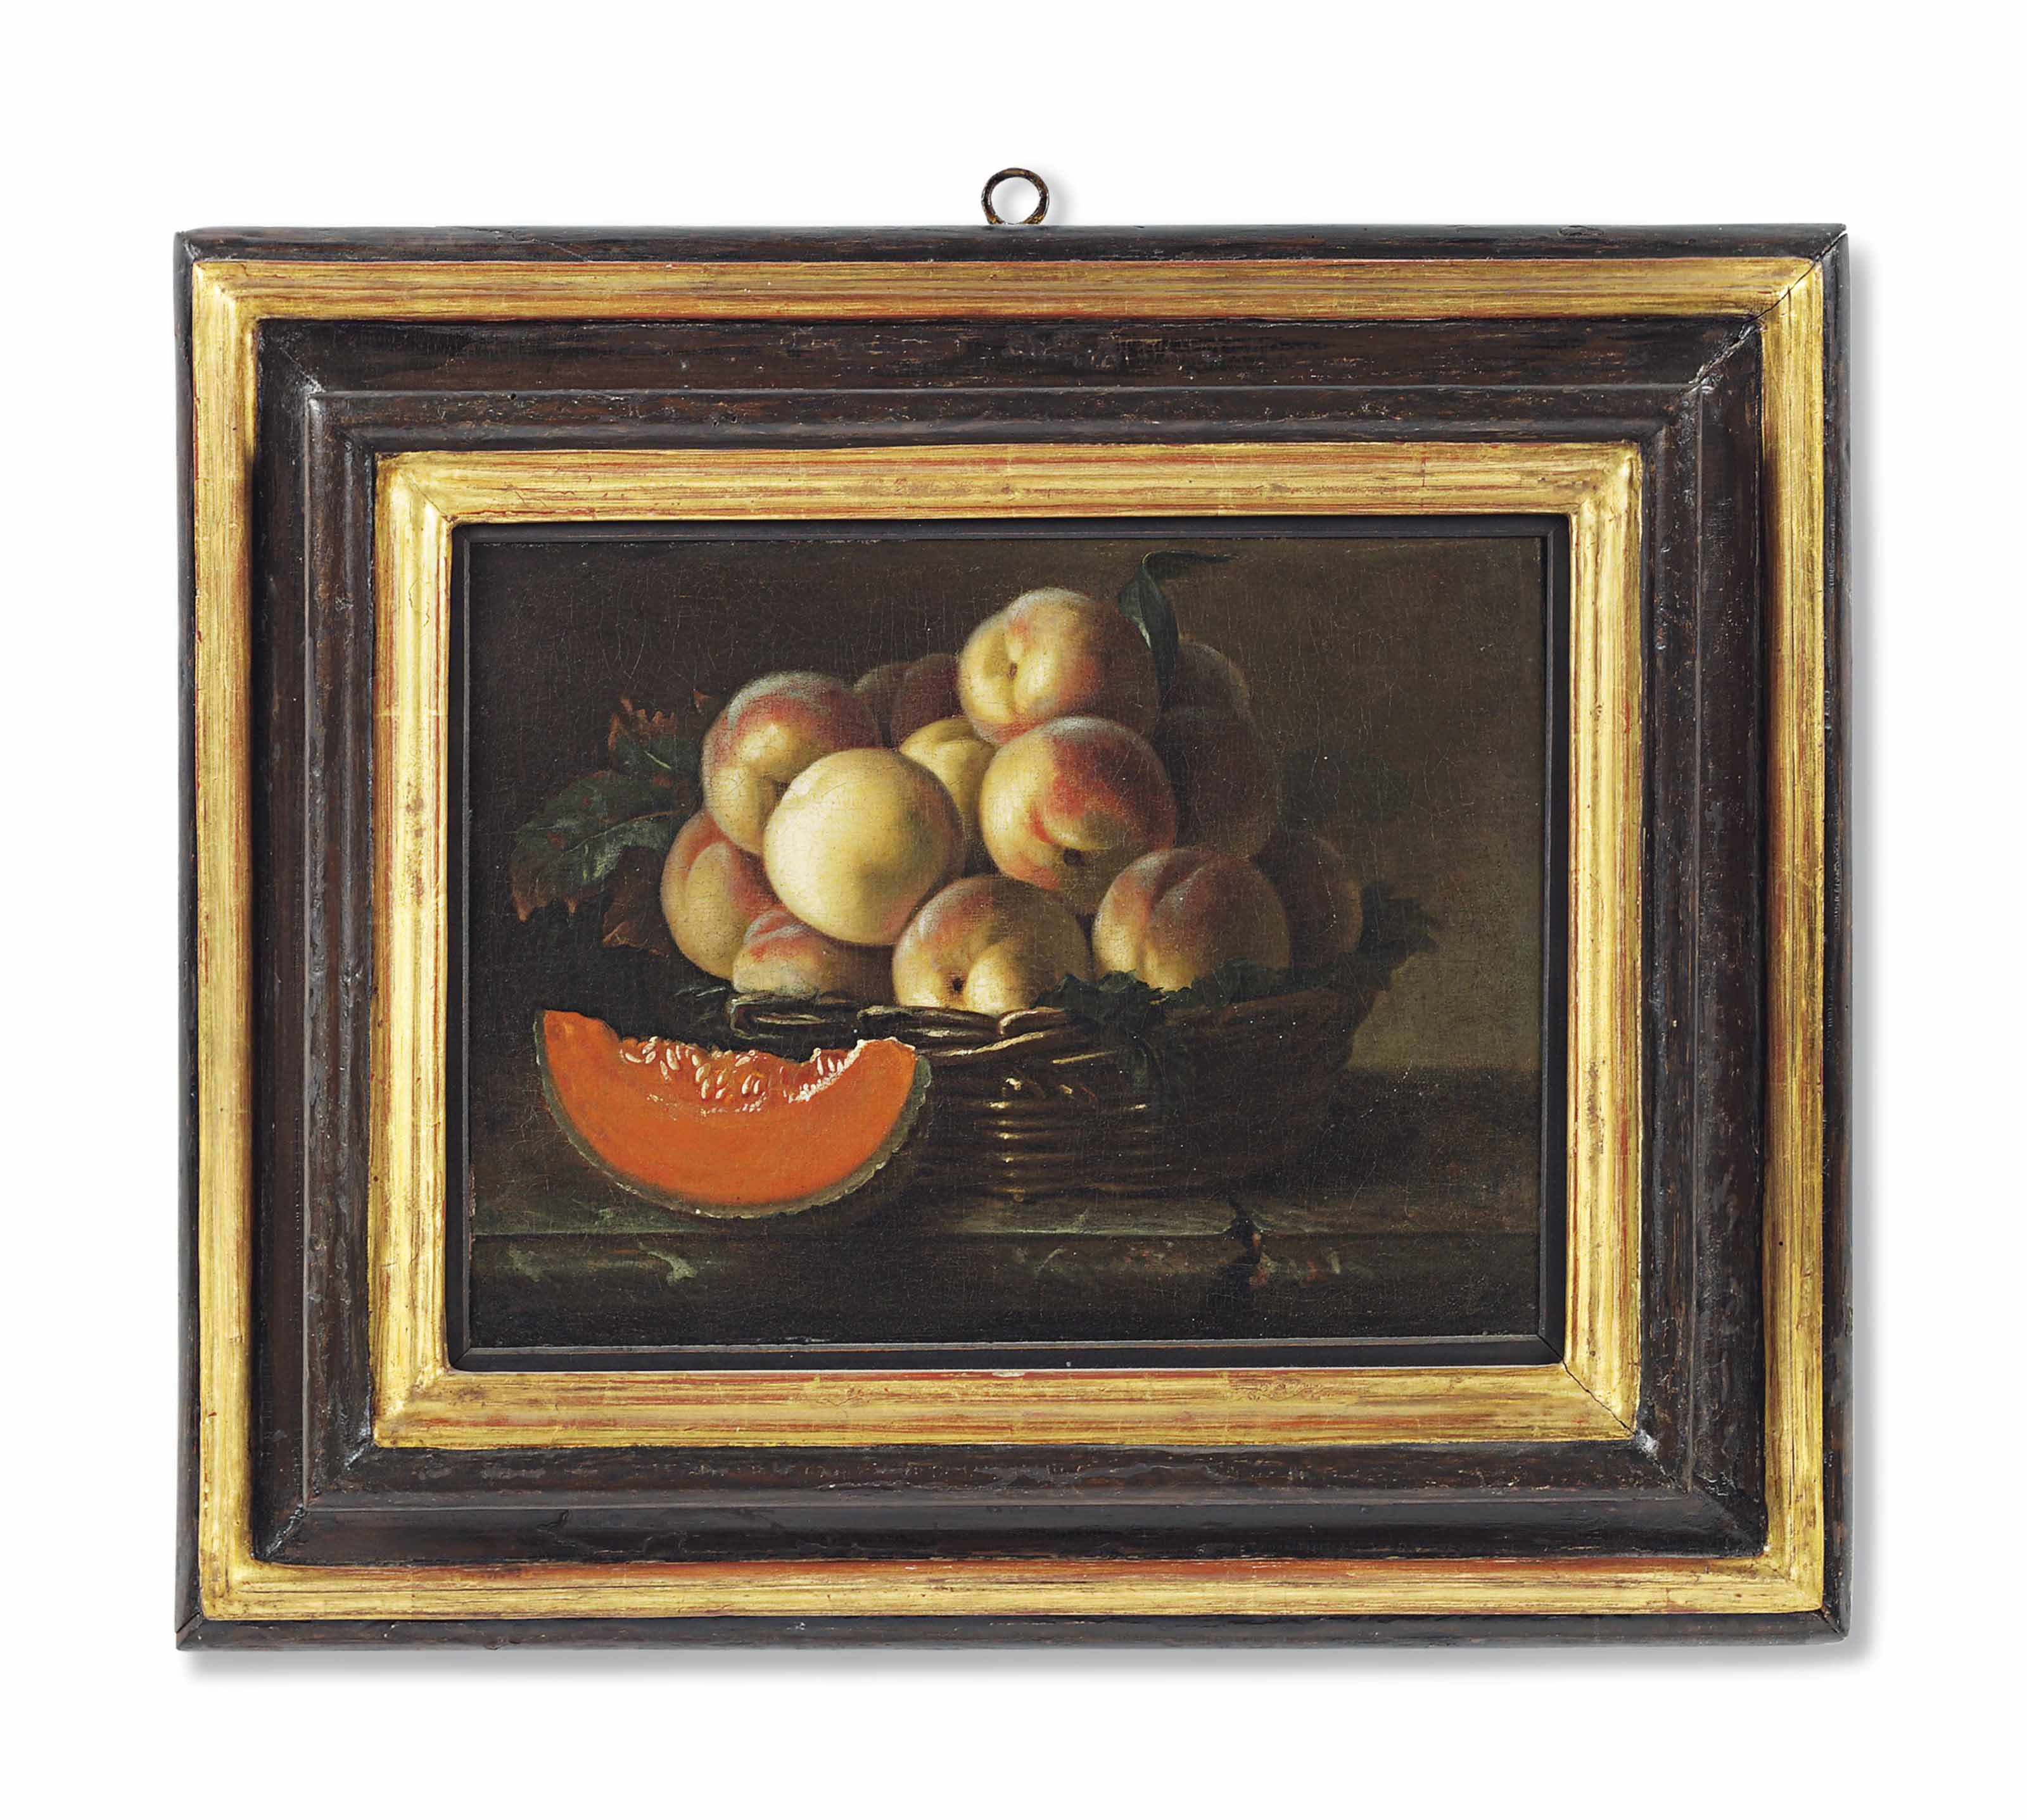 Peaches in a wicker basket with a slice of melon on a ledge